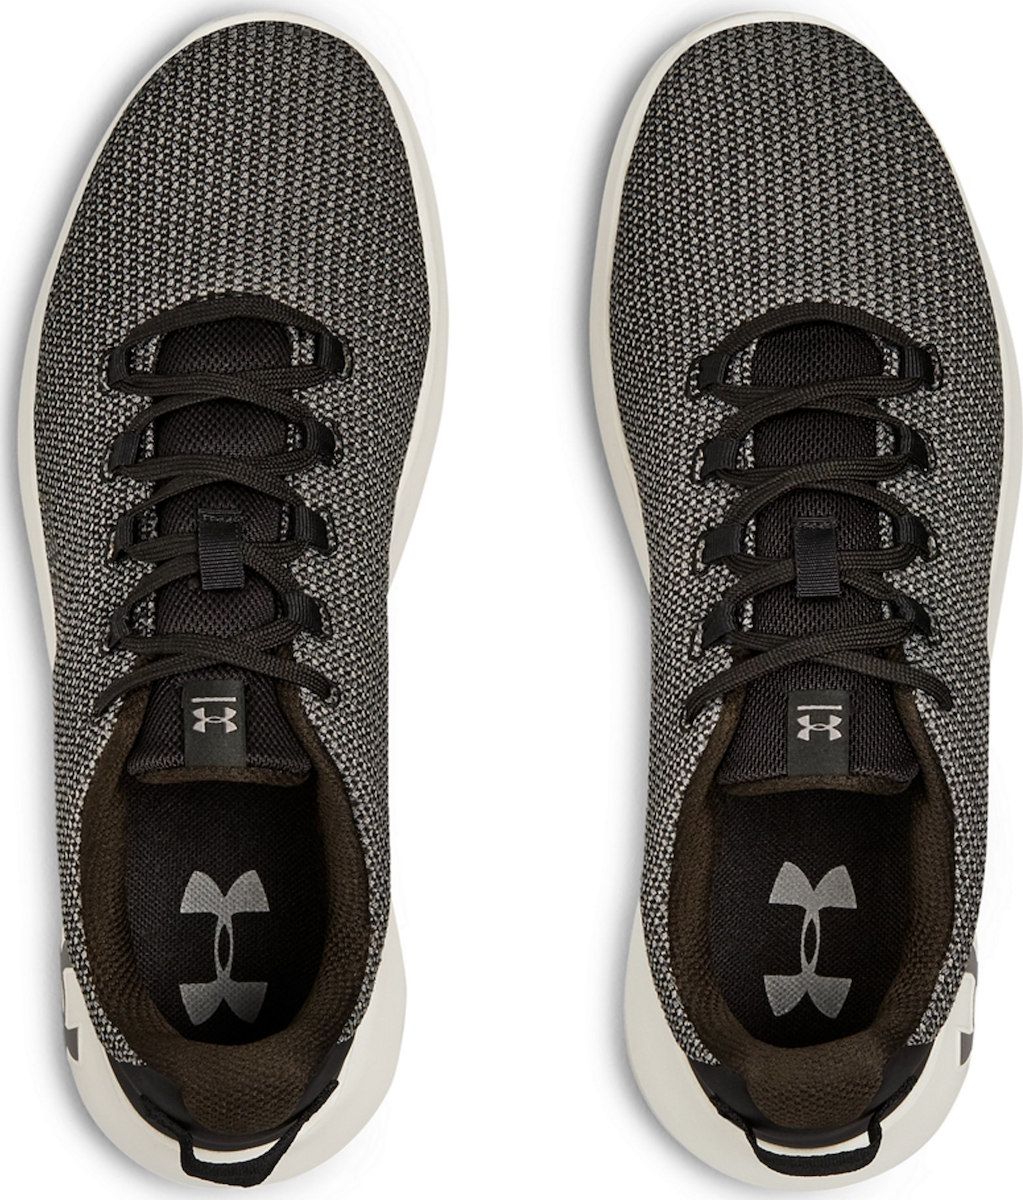 Under Armour Ripple Shoes